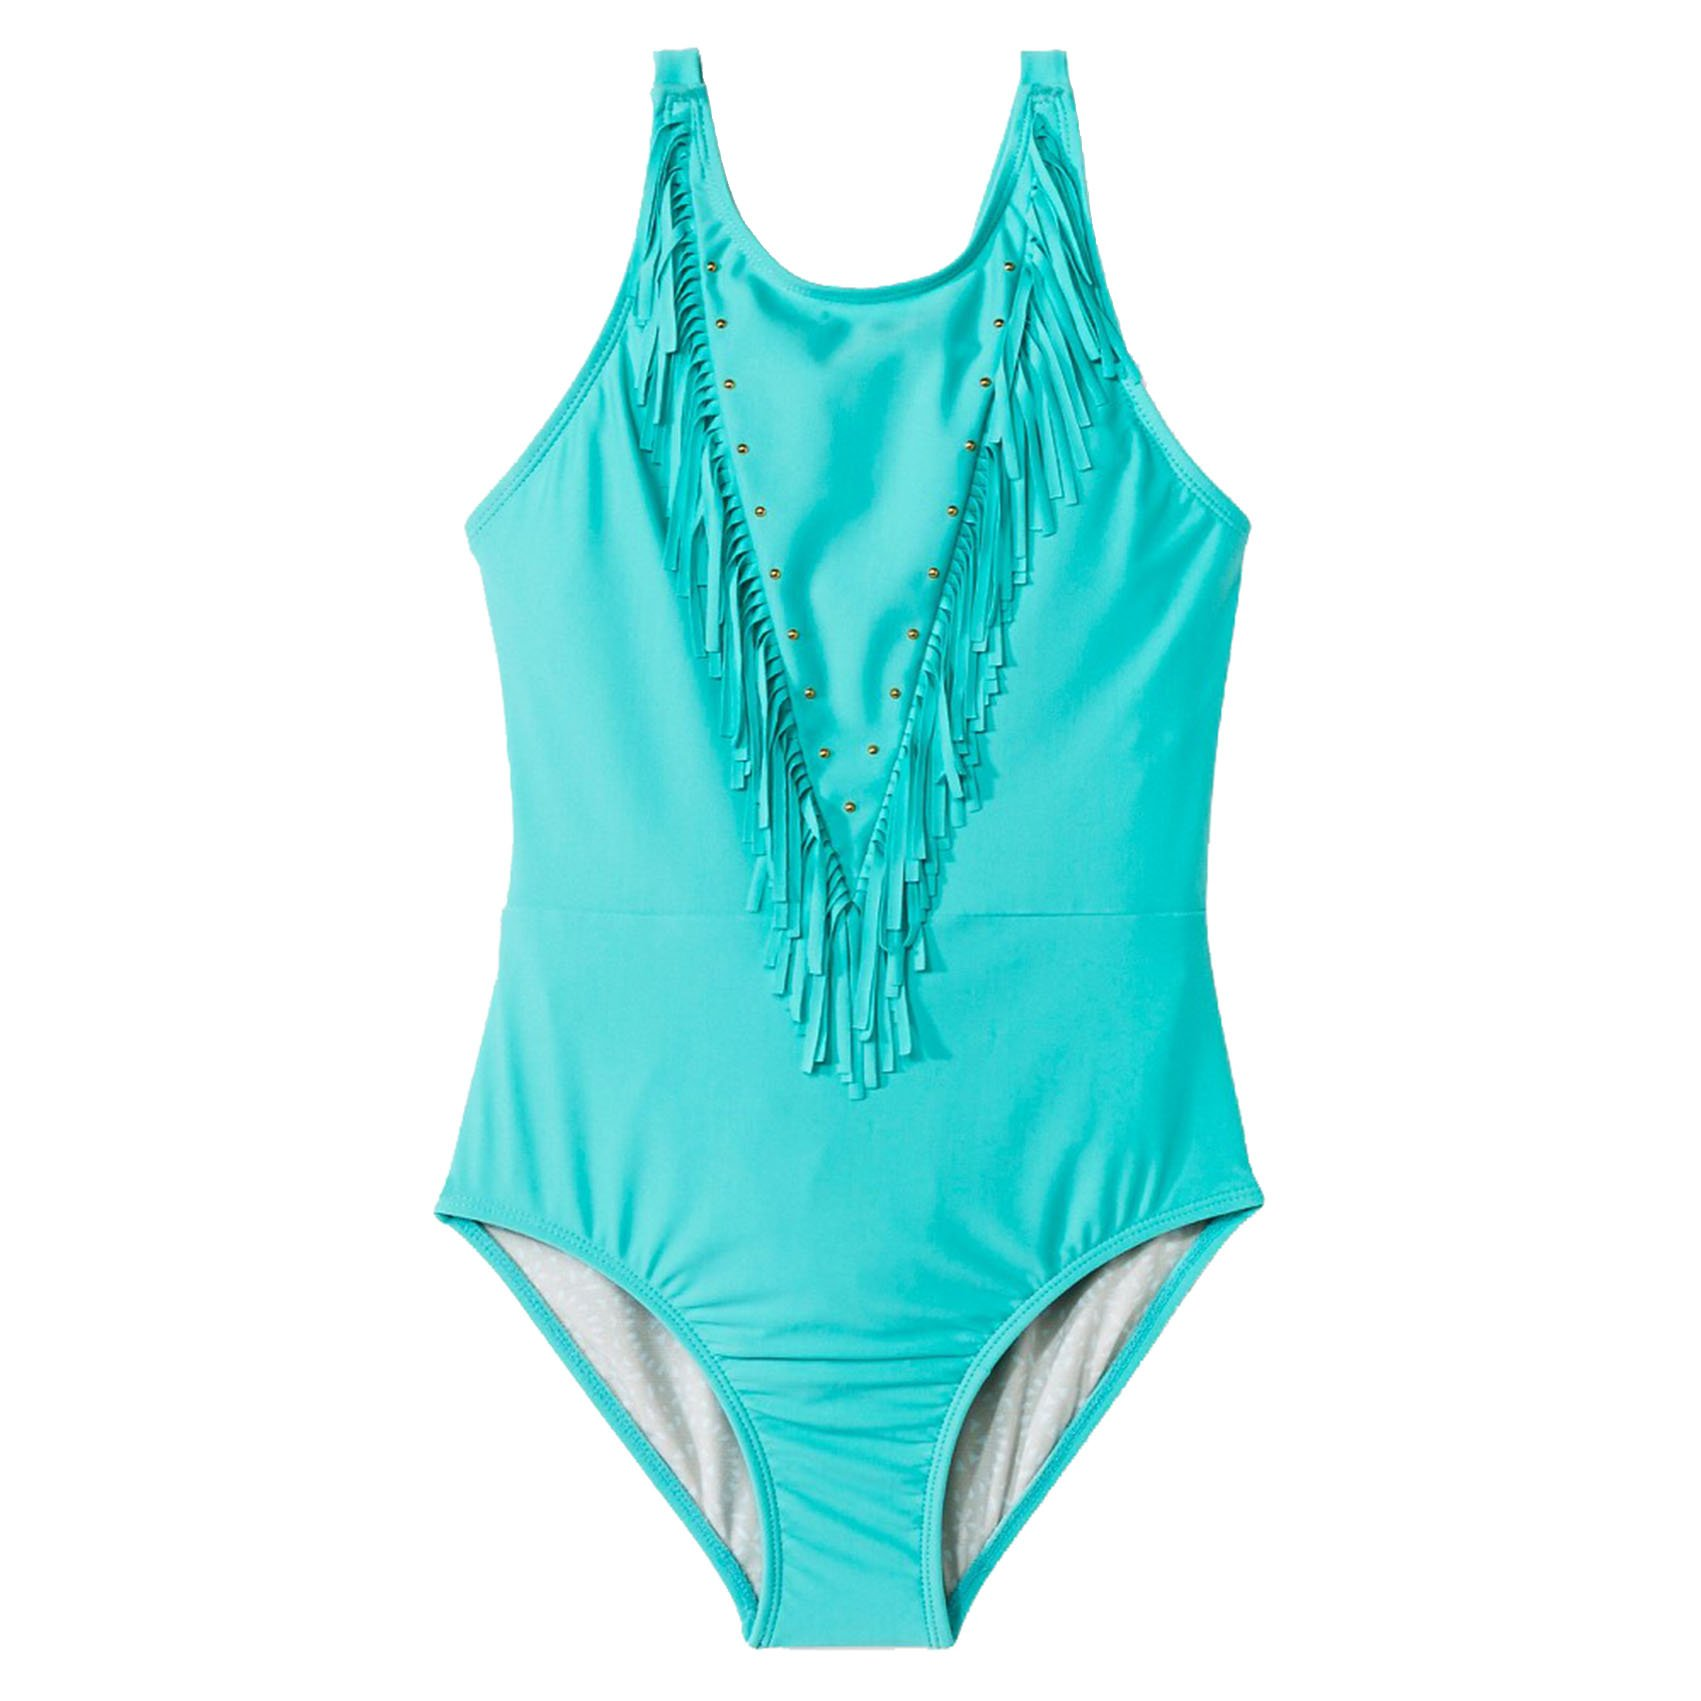 Cleobella Turquoise Wild Flower Girls' One Piece Swimsuit (Large, Seaglass)